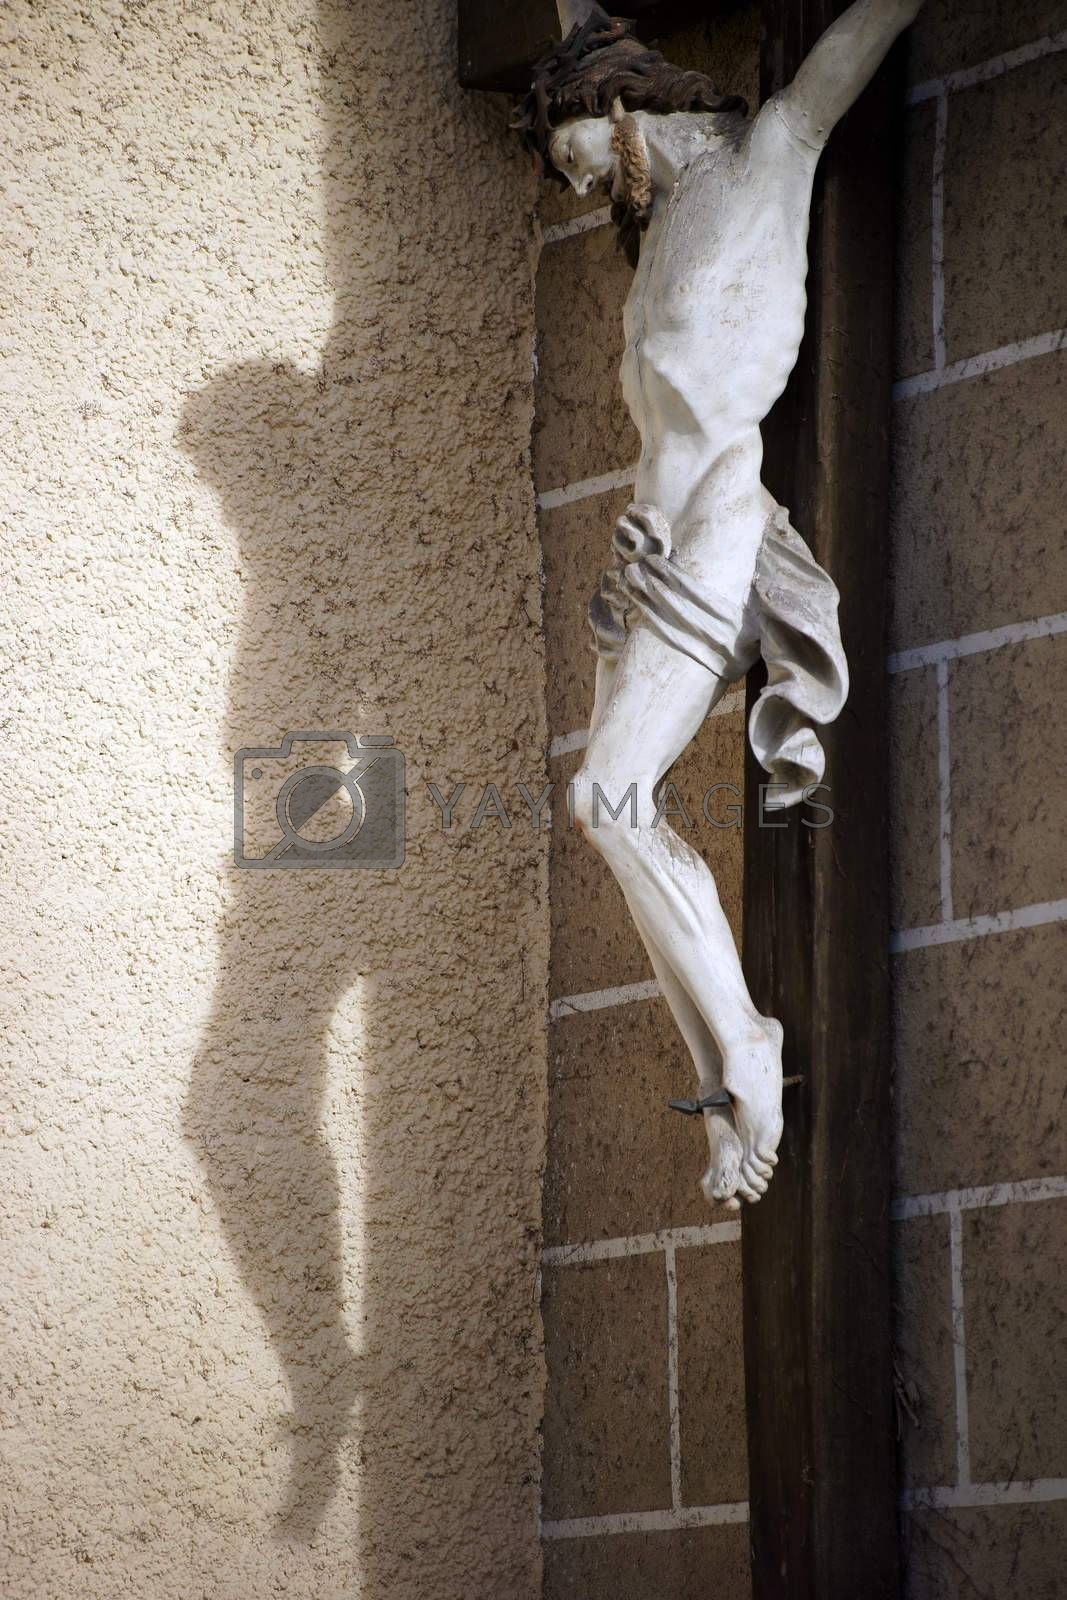 Baden, Austria - November 15, 2015: A statue of Jesus on the cross casts a shadow on the wall of the Church of St. Stephan on November 15, 2015 in Baden near Vienna.